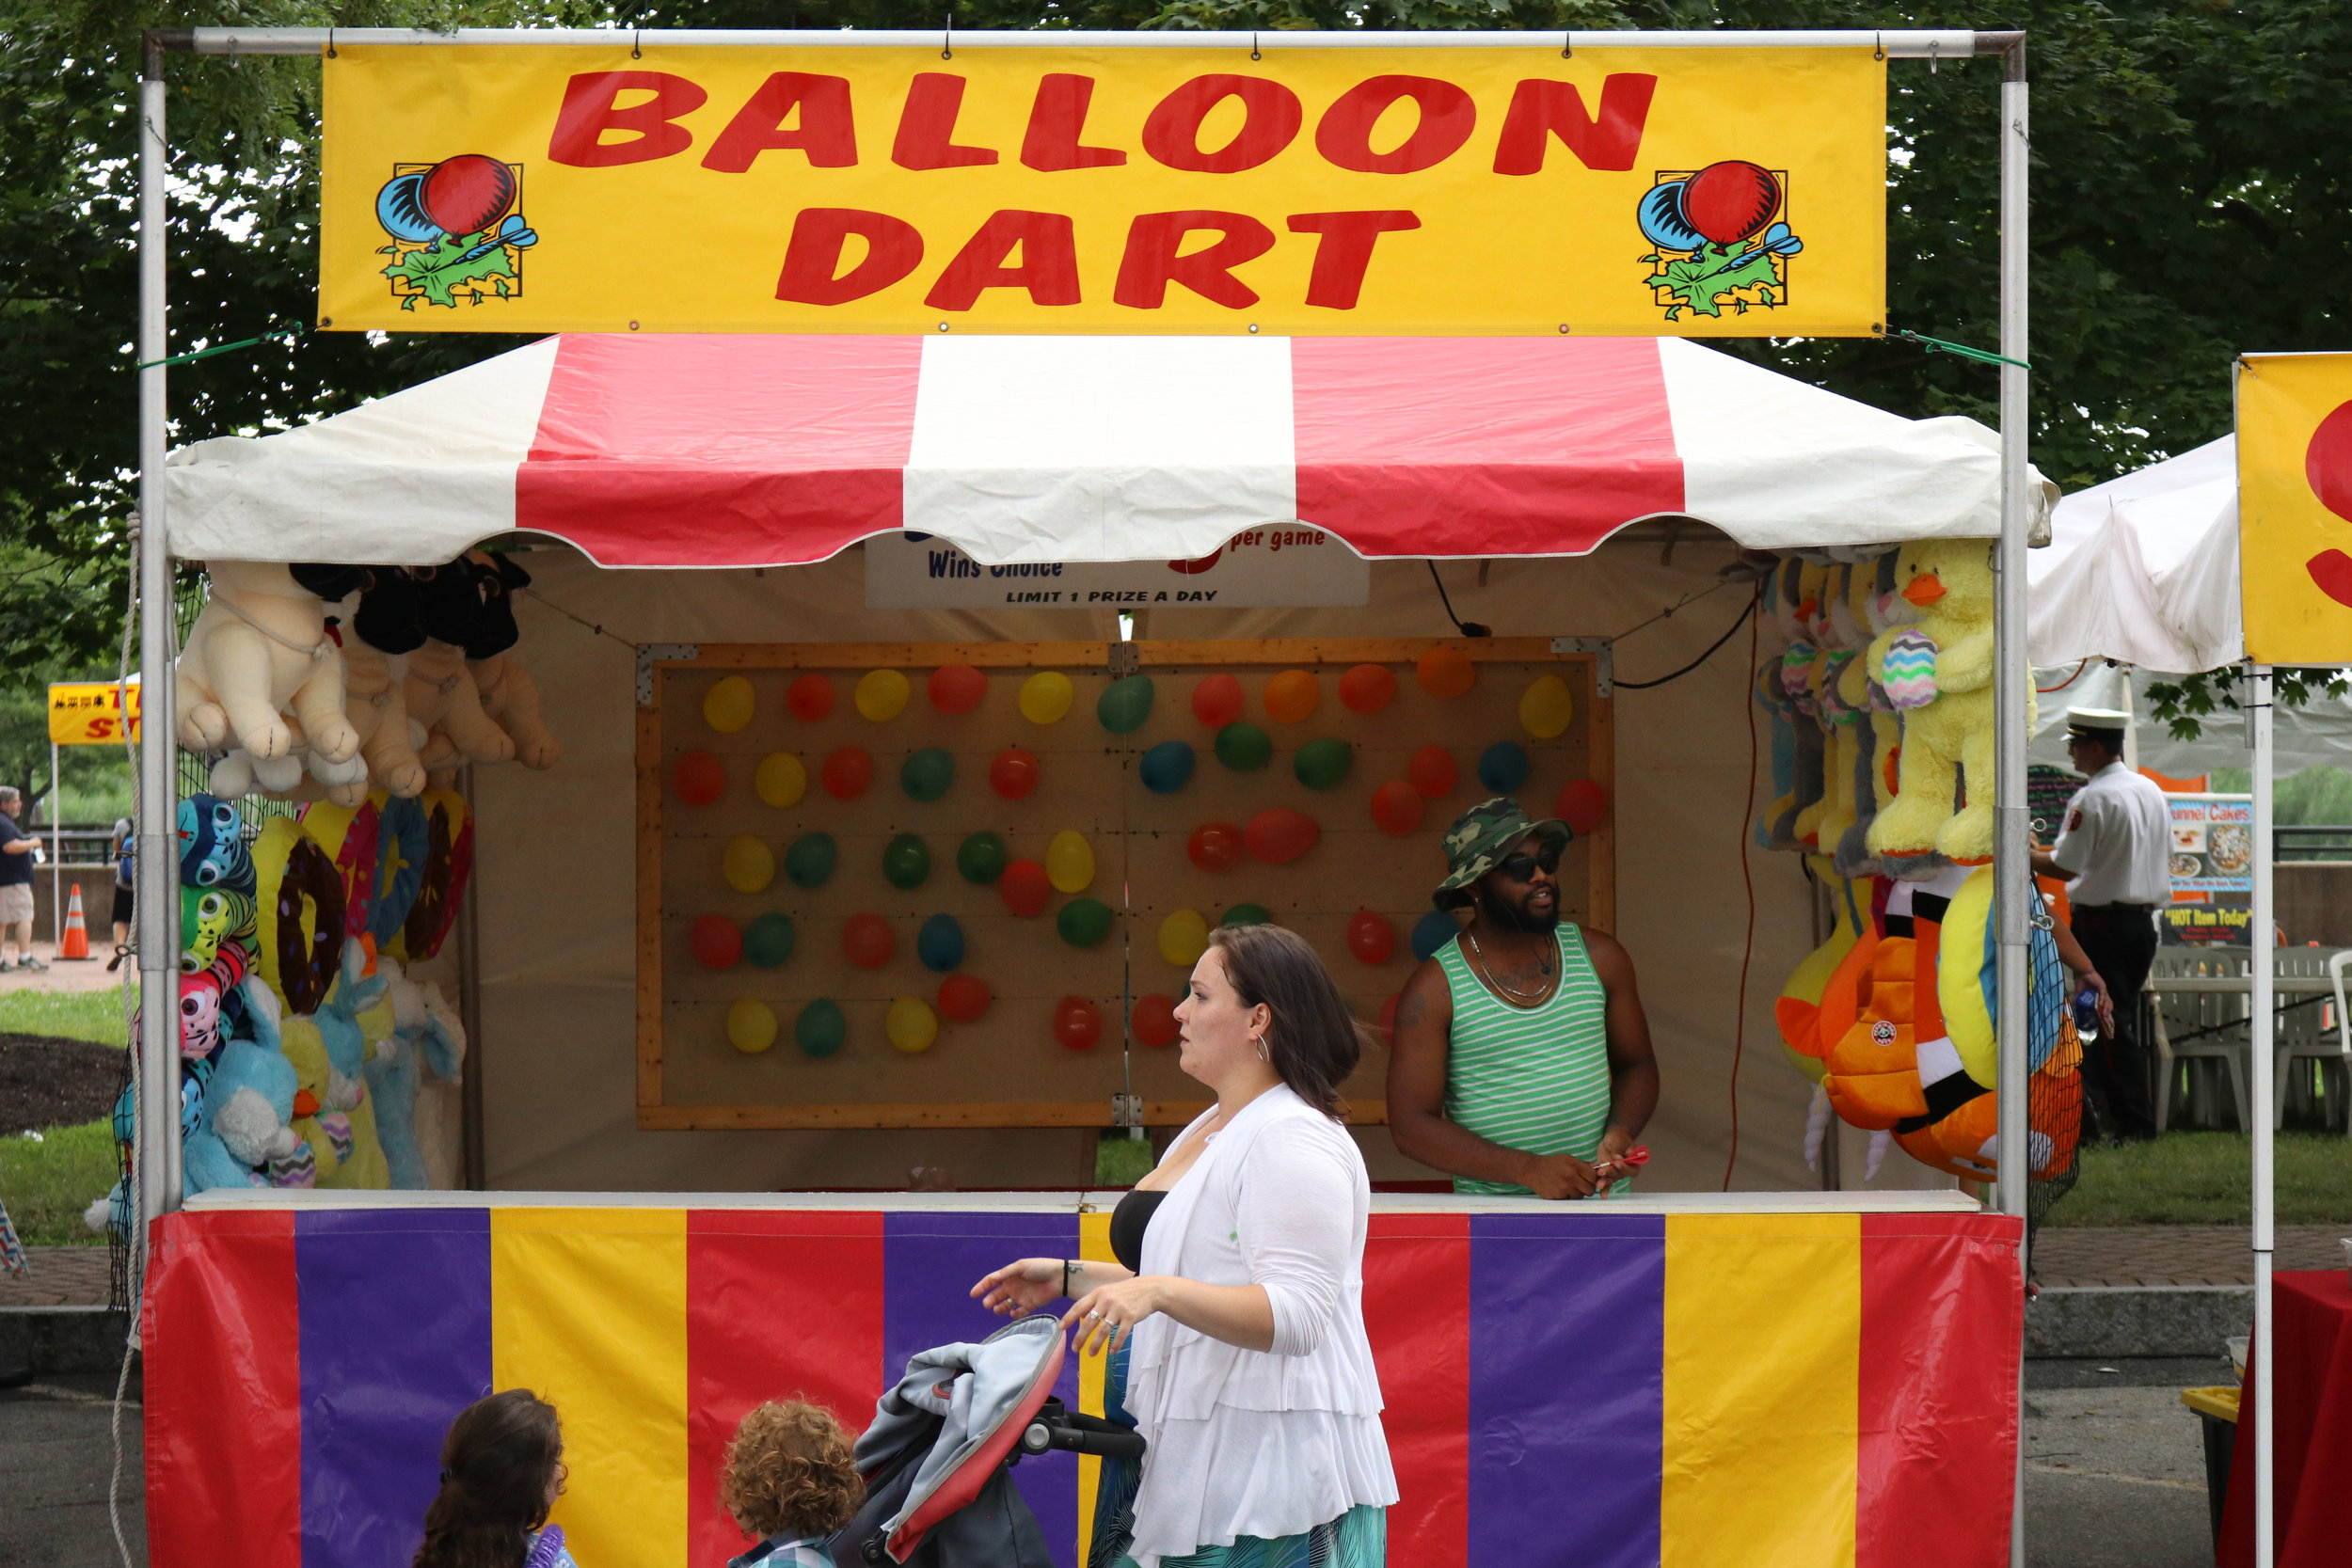 Ballon Dart - You've got aim! Pop 3 of these balloons and win a prize, but you gotta get 3!